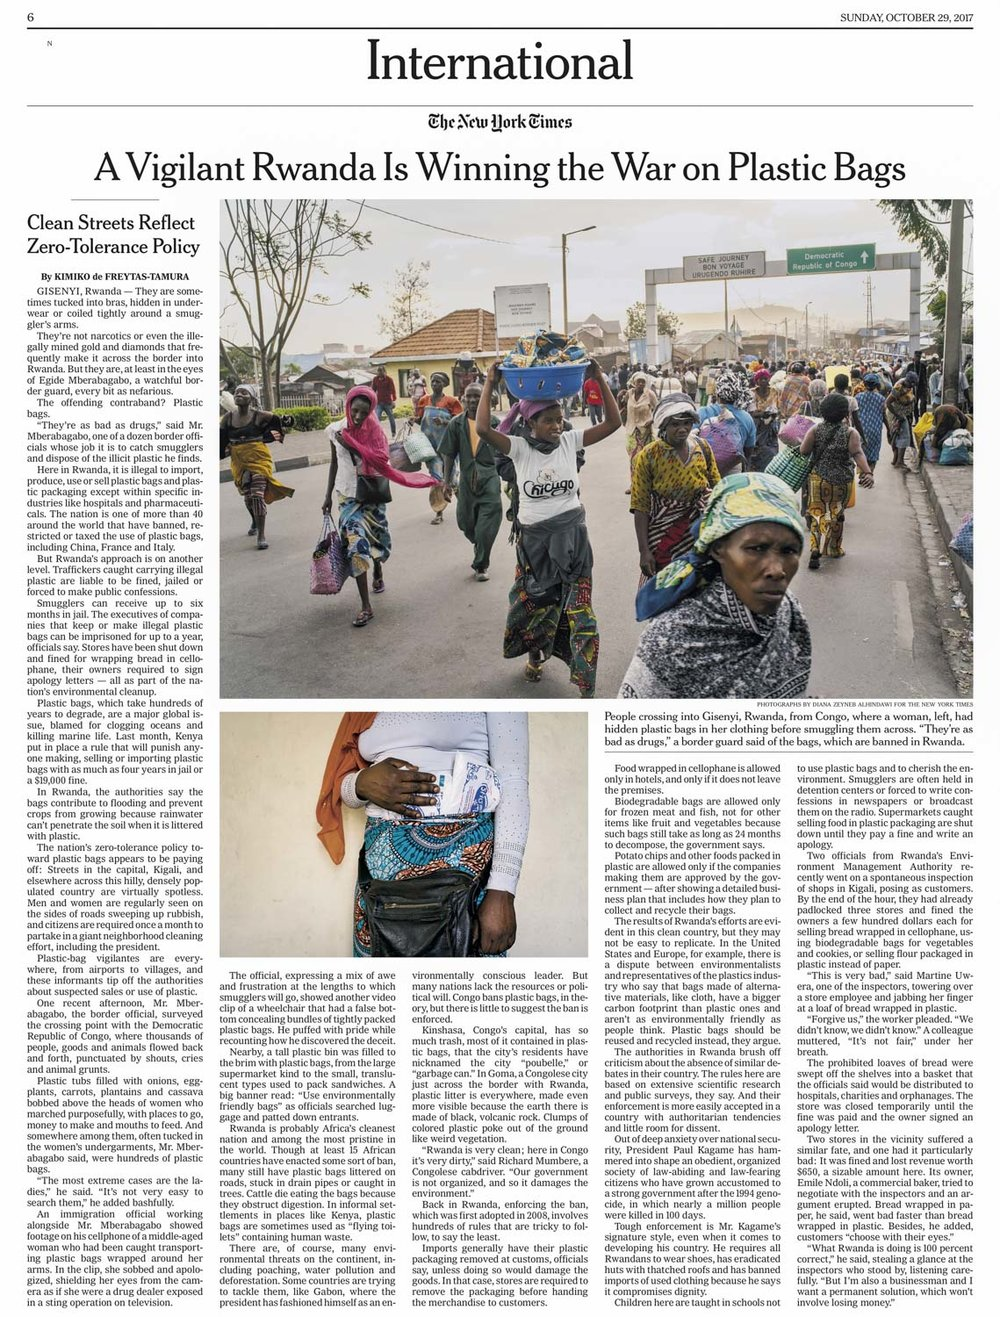 CLICK on title for online version     A vigilant Rwanda is winning the war on plastic bags  | The New York Times, page A6, Oct 29, 2017